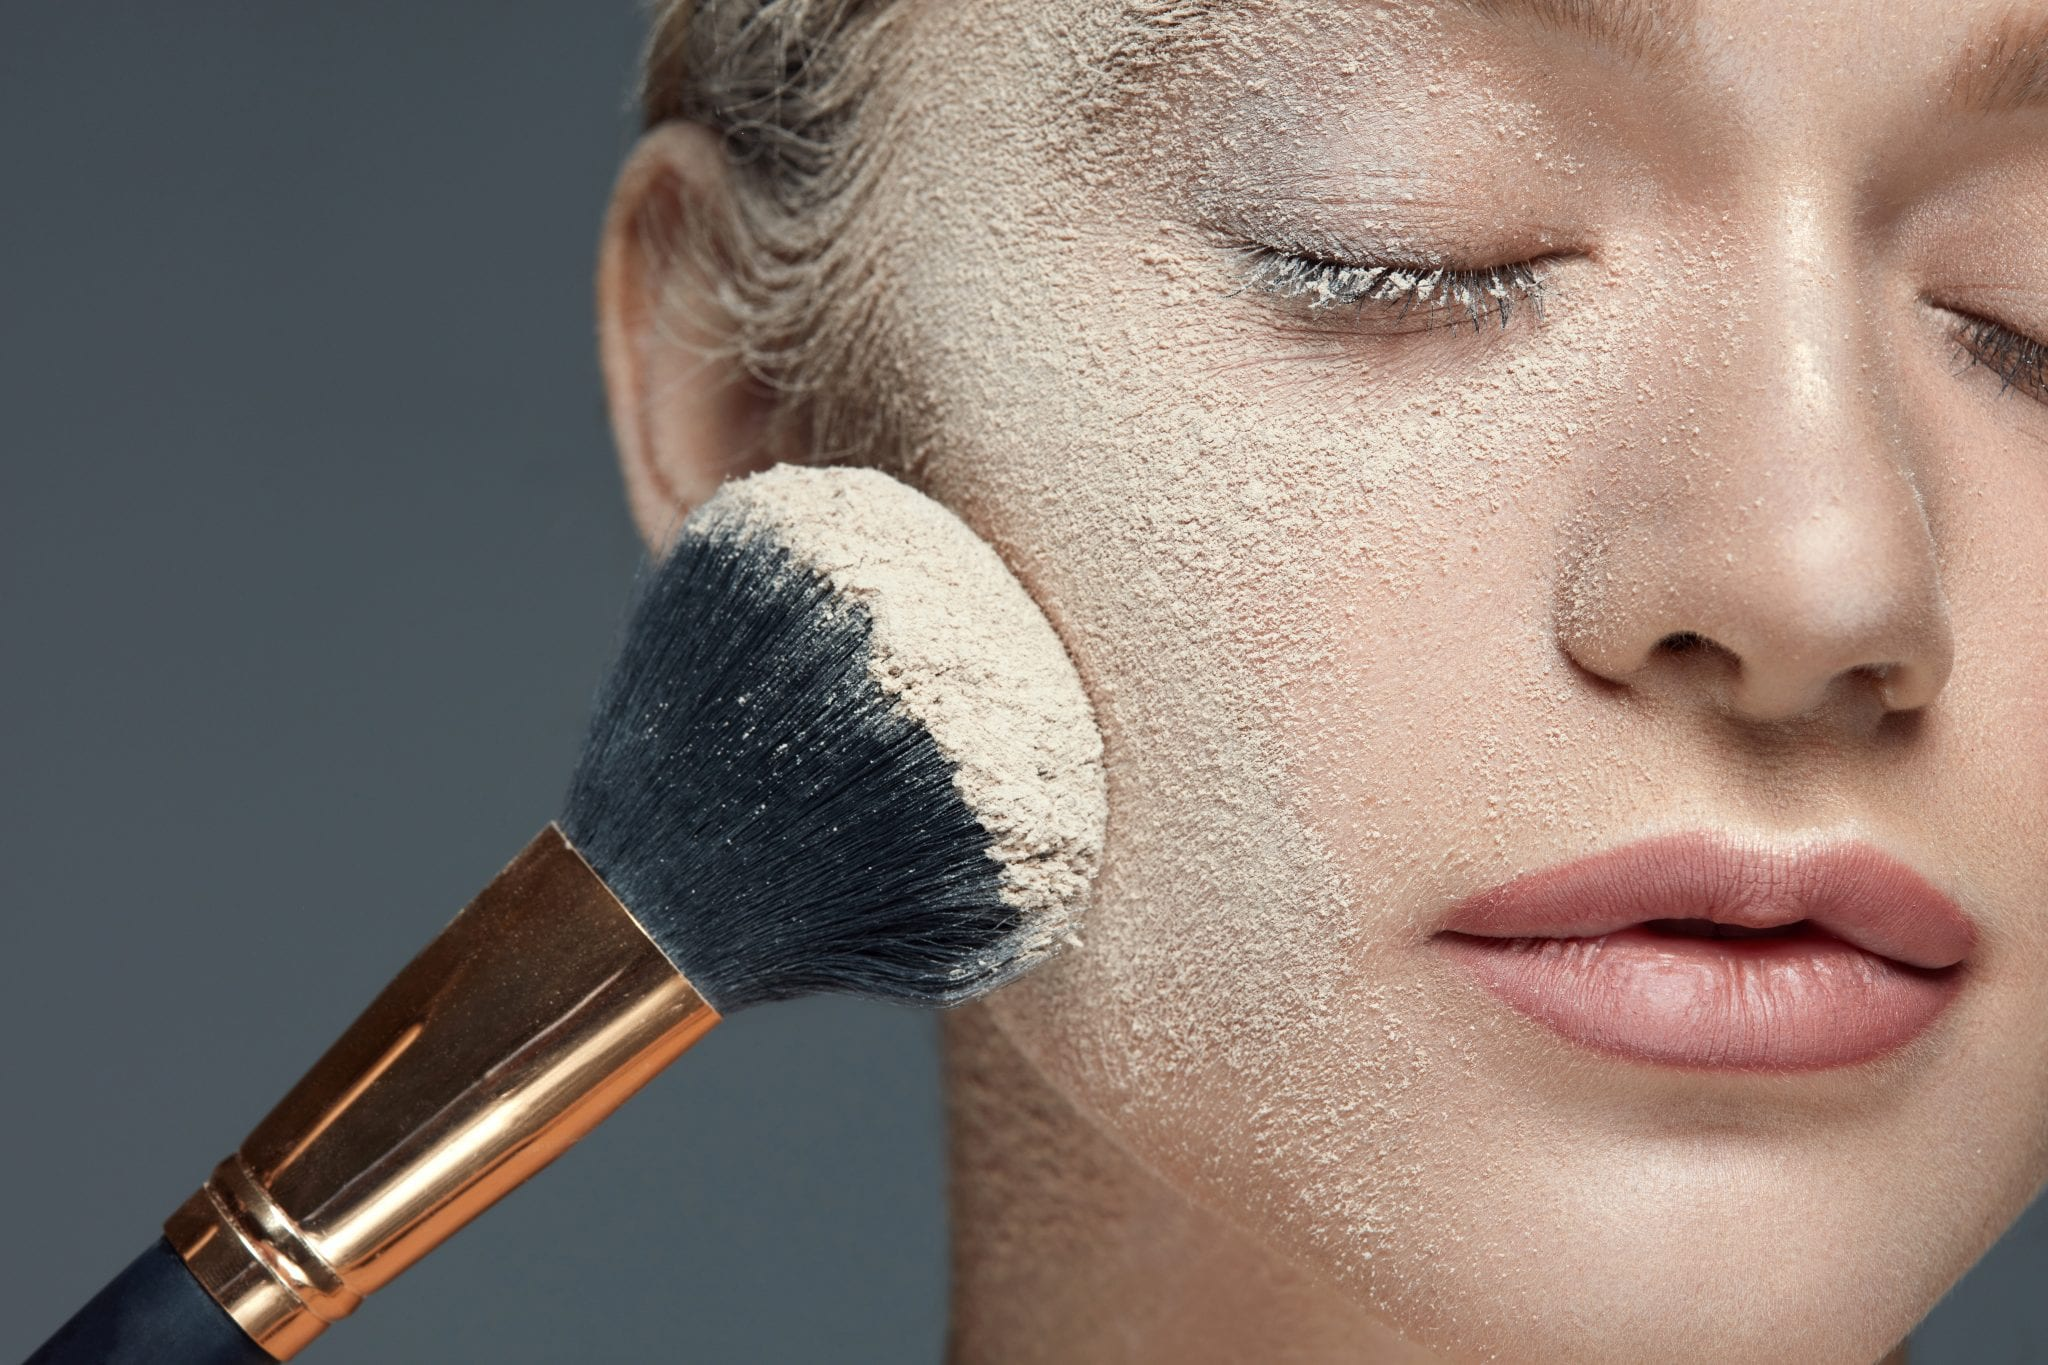 woman with eyes closed using translucent powder on her face with a fluffy brush